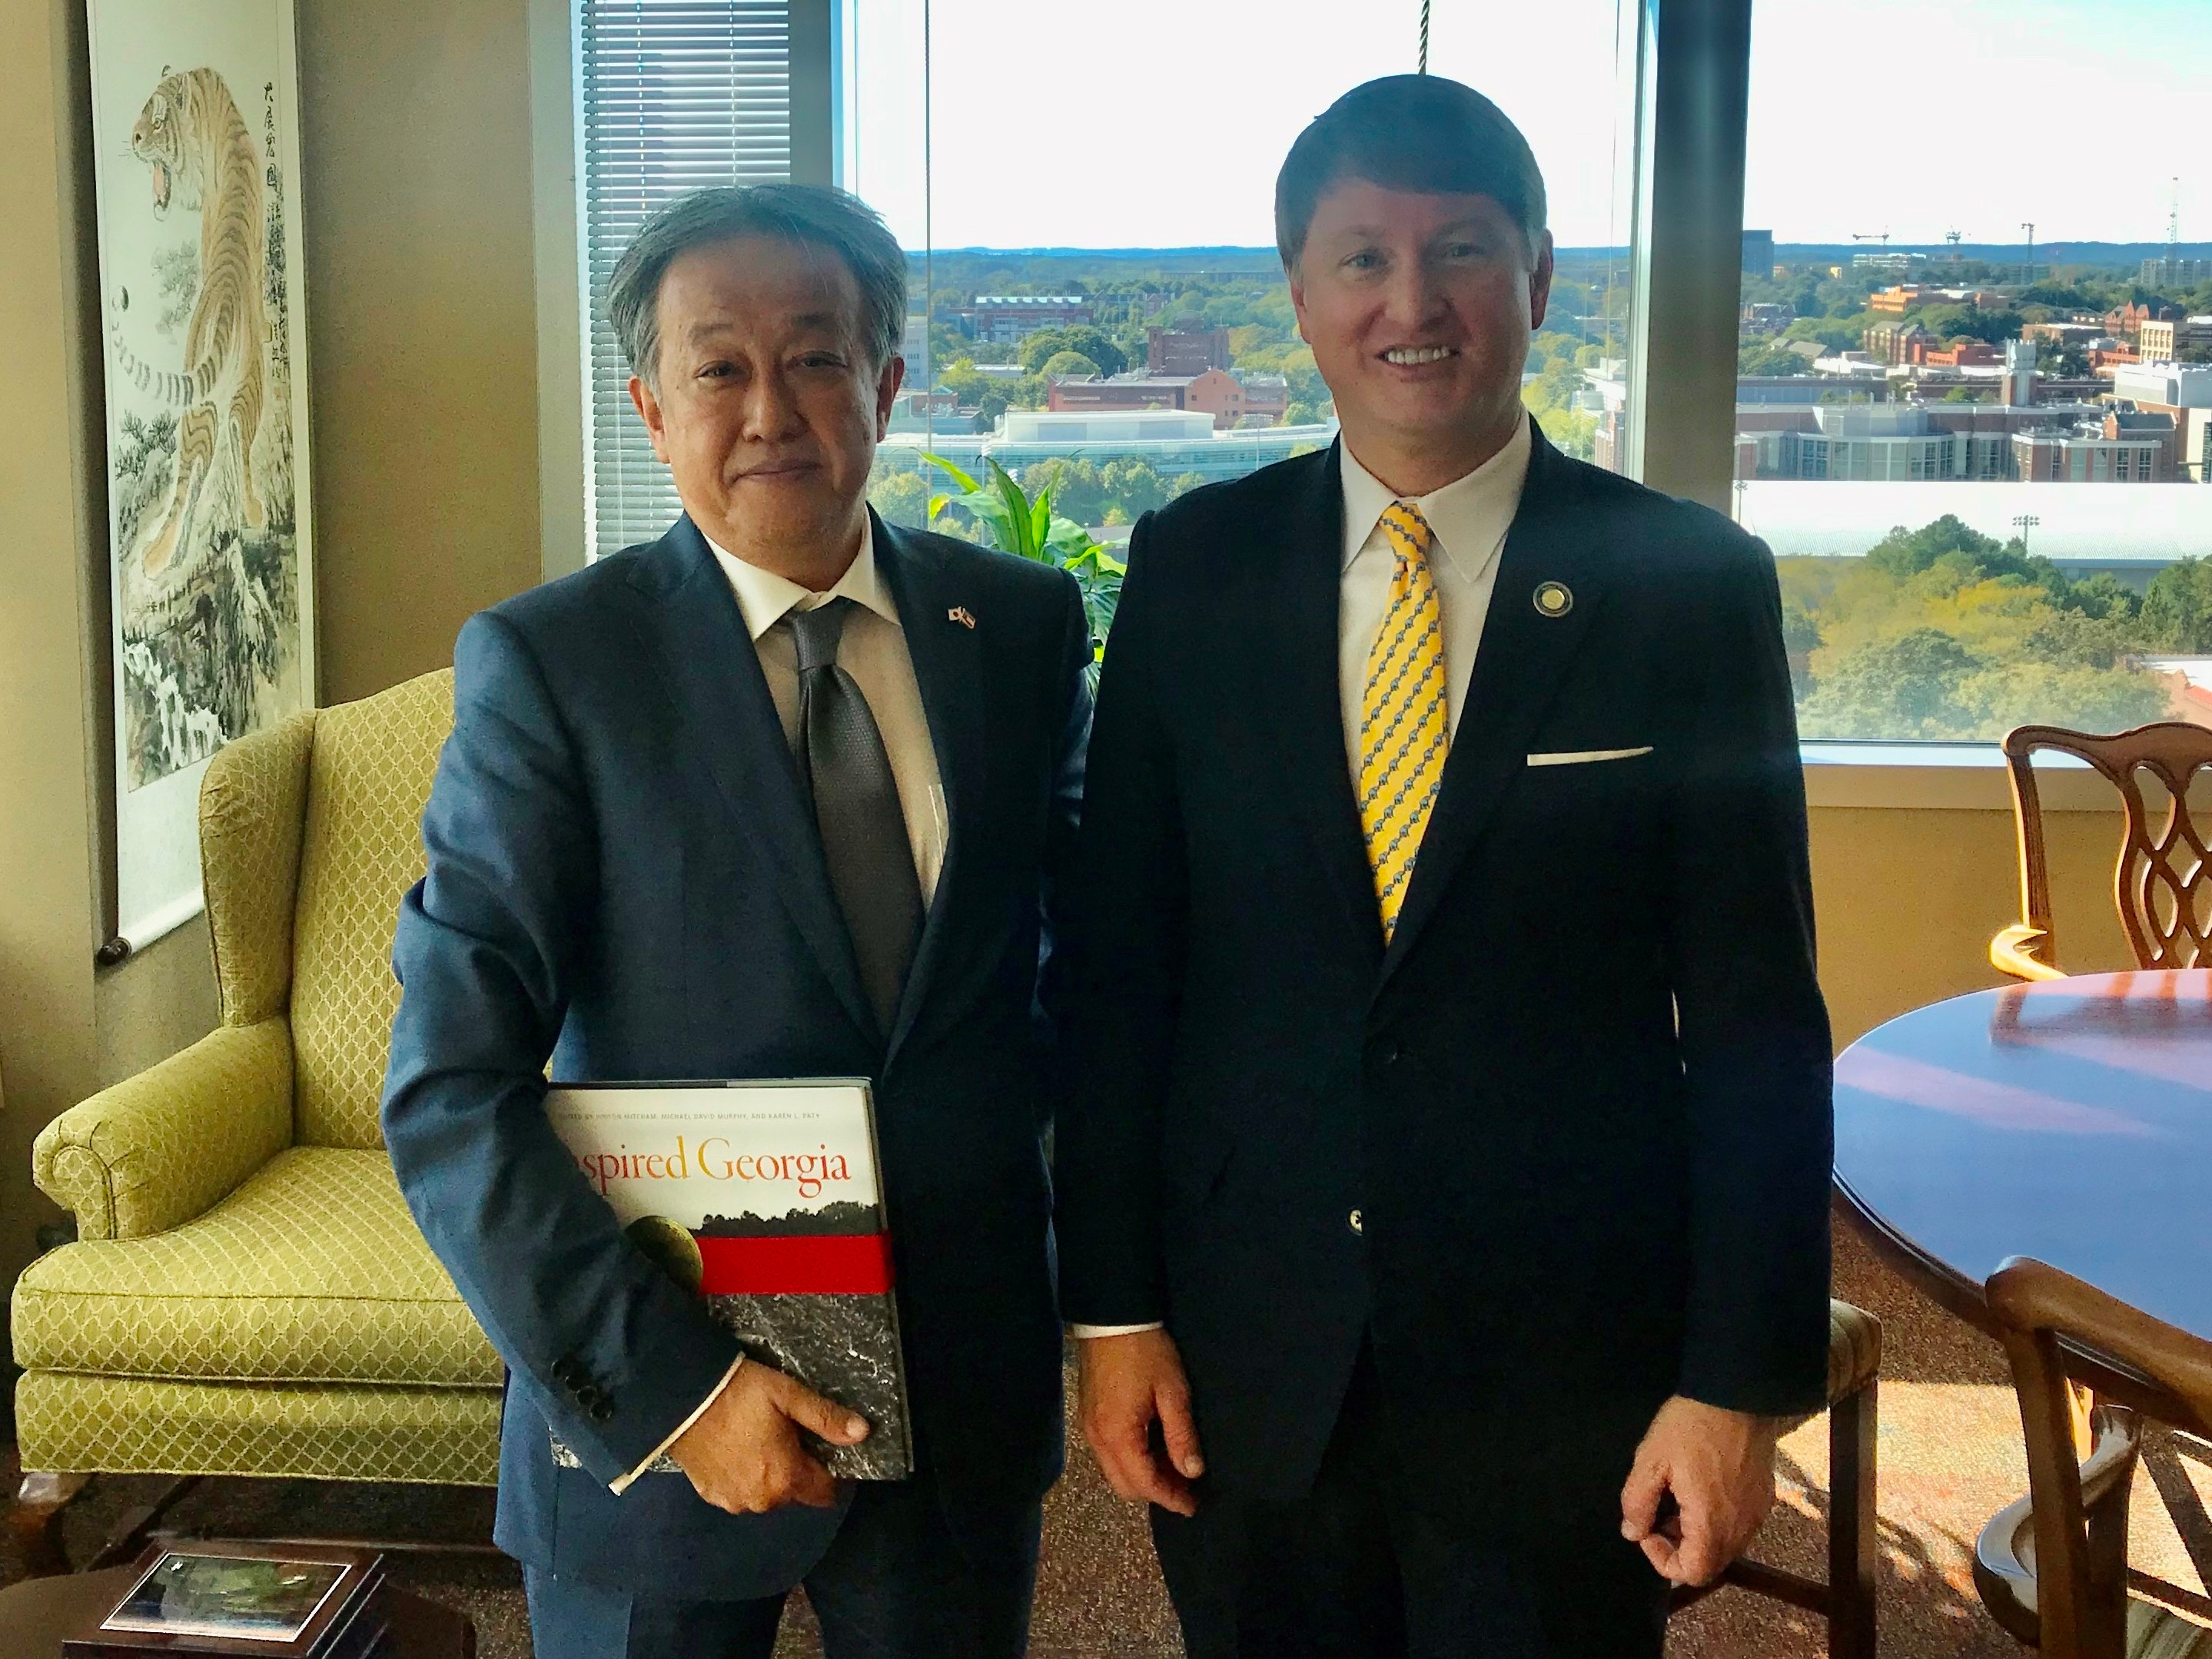 CG Takeuchi's courtesy visit to Commissioner Pat Wilson